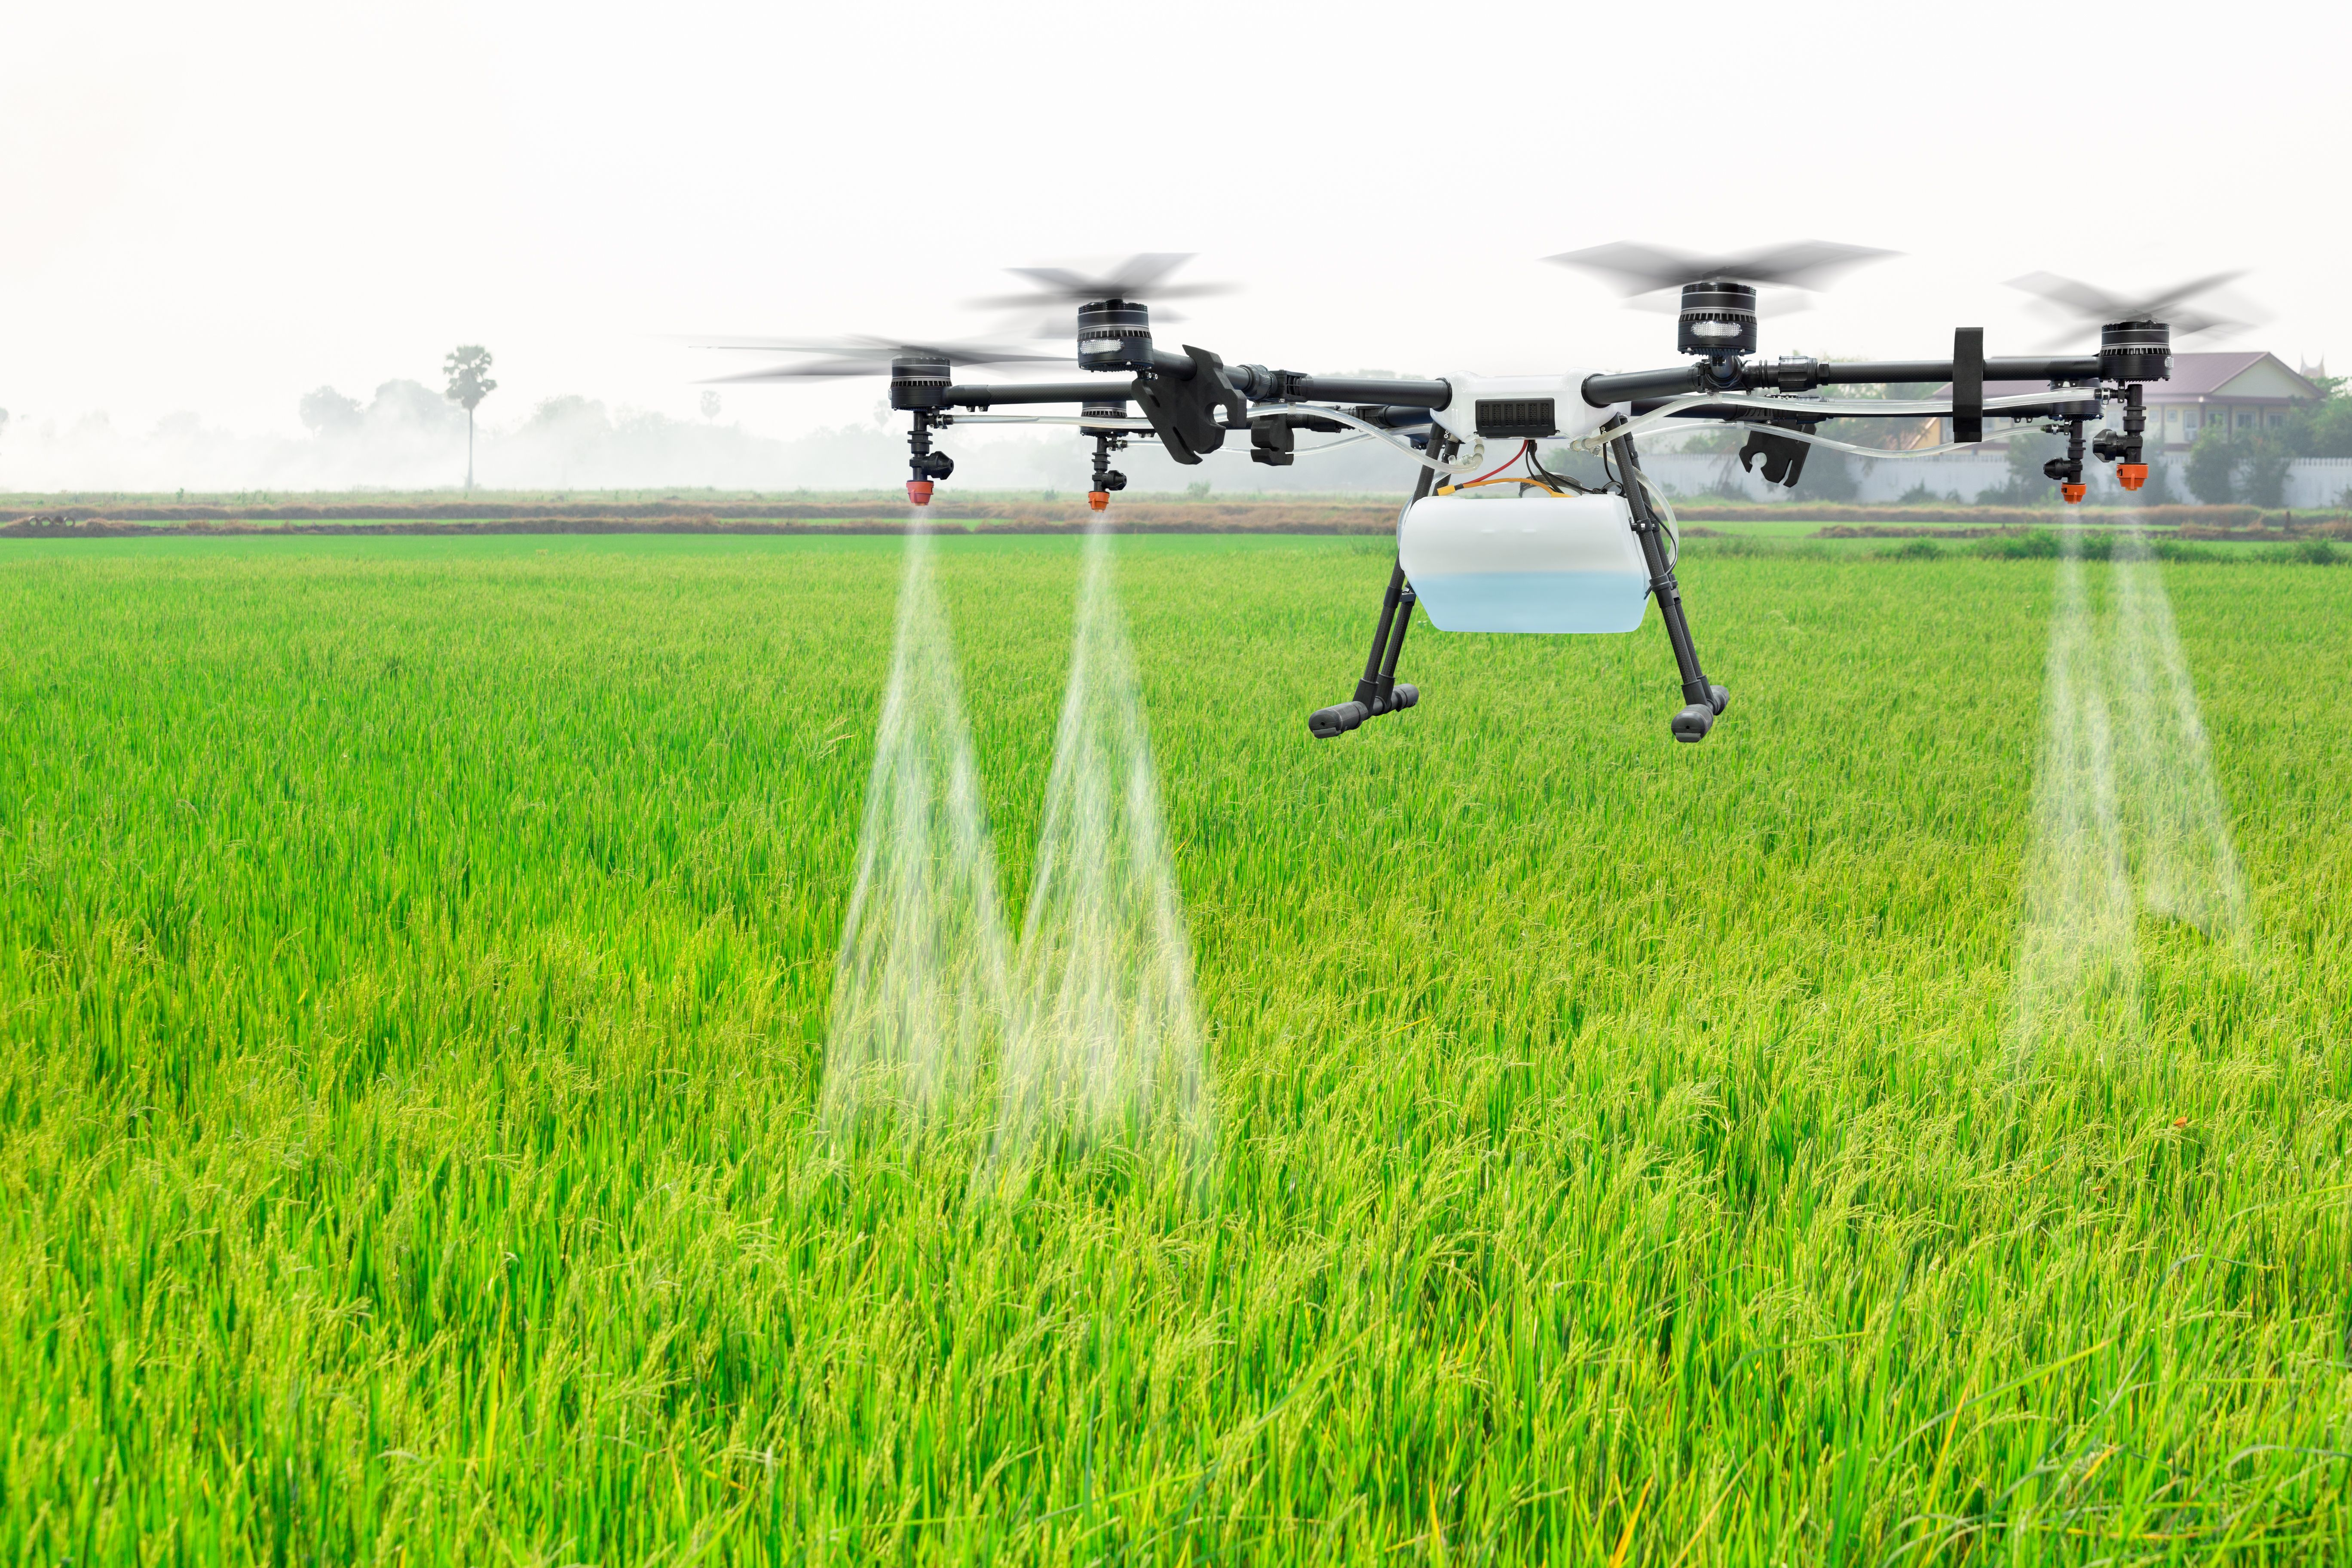 A drone flying over a crop